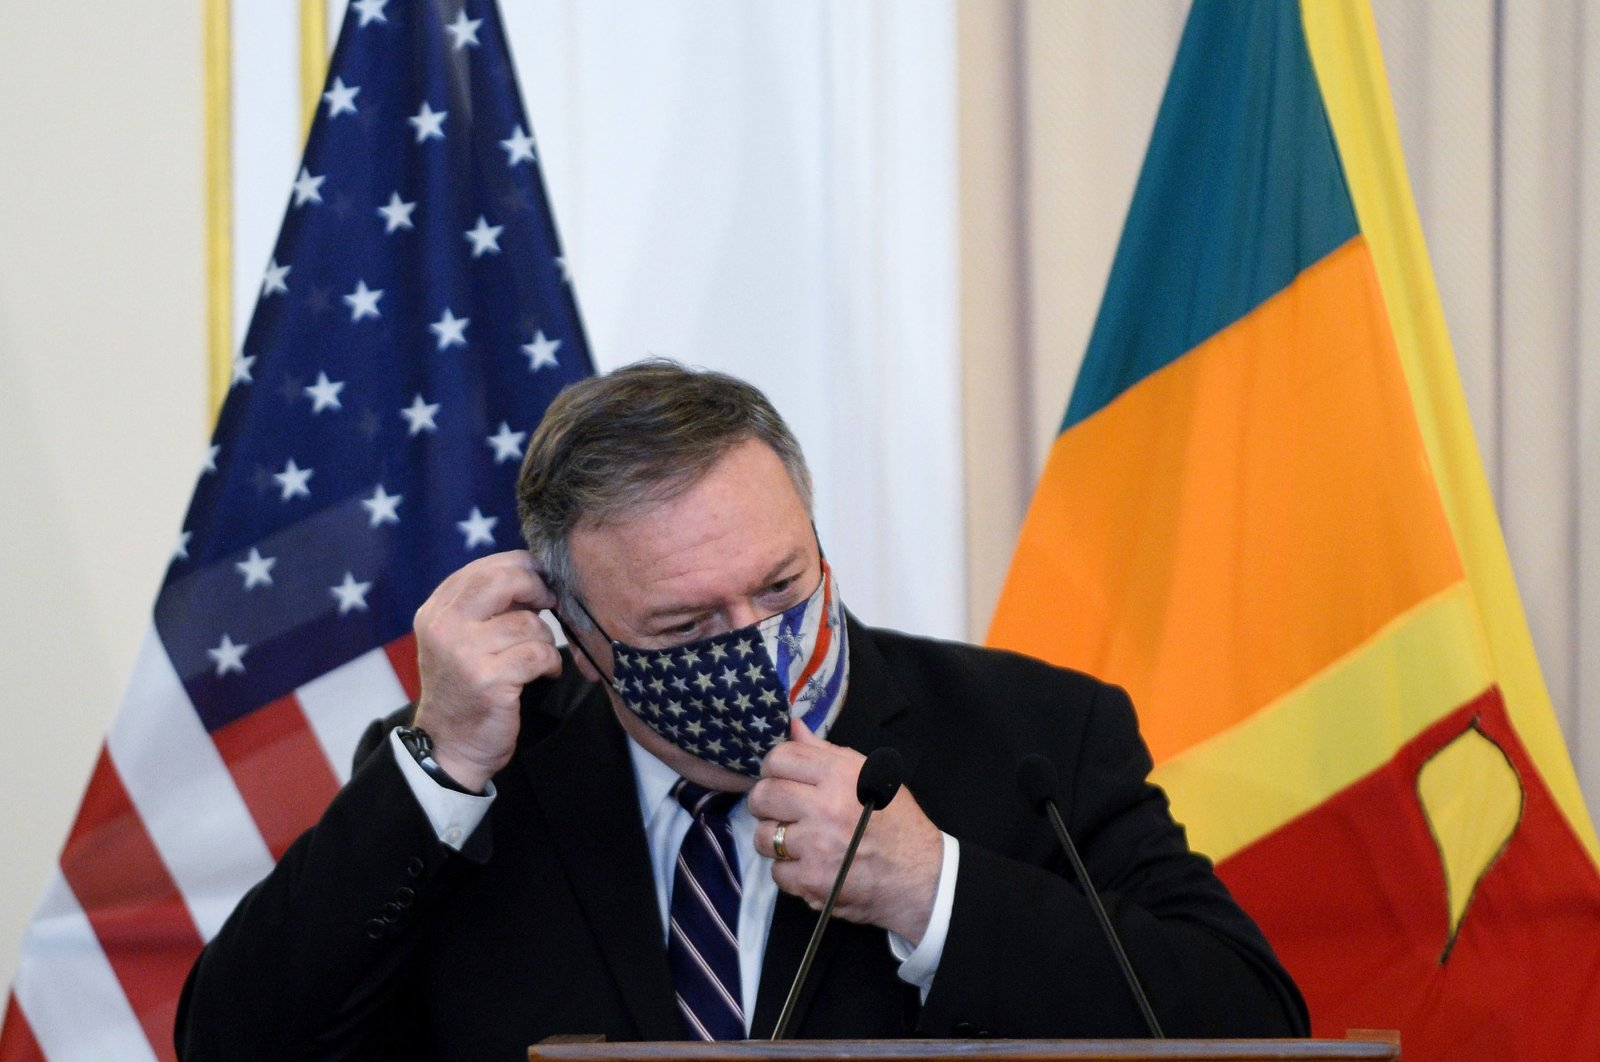 U.S. Secretary of State Mike Pompeo adjusts his facemask during a joint press briefing with Sri Lankan Foreign Minister Dinesh Gunawardena (not pictured) at the Ministry of Foreign Relations in Colombo, Oct. 28, 2020. (AFP Photo)